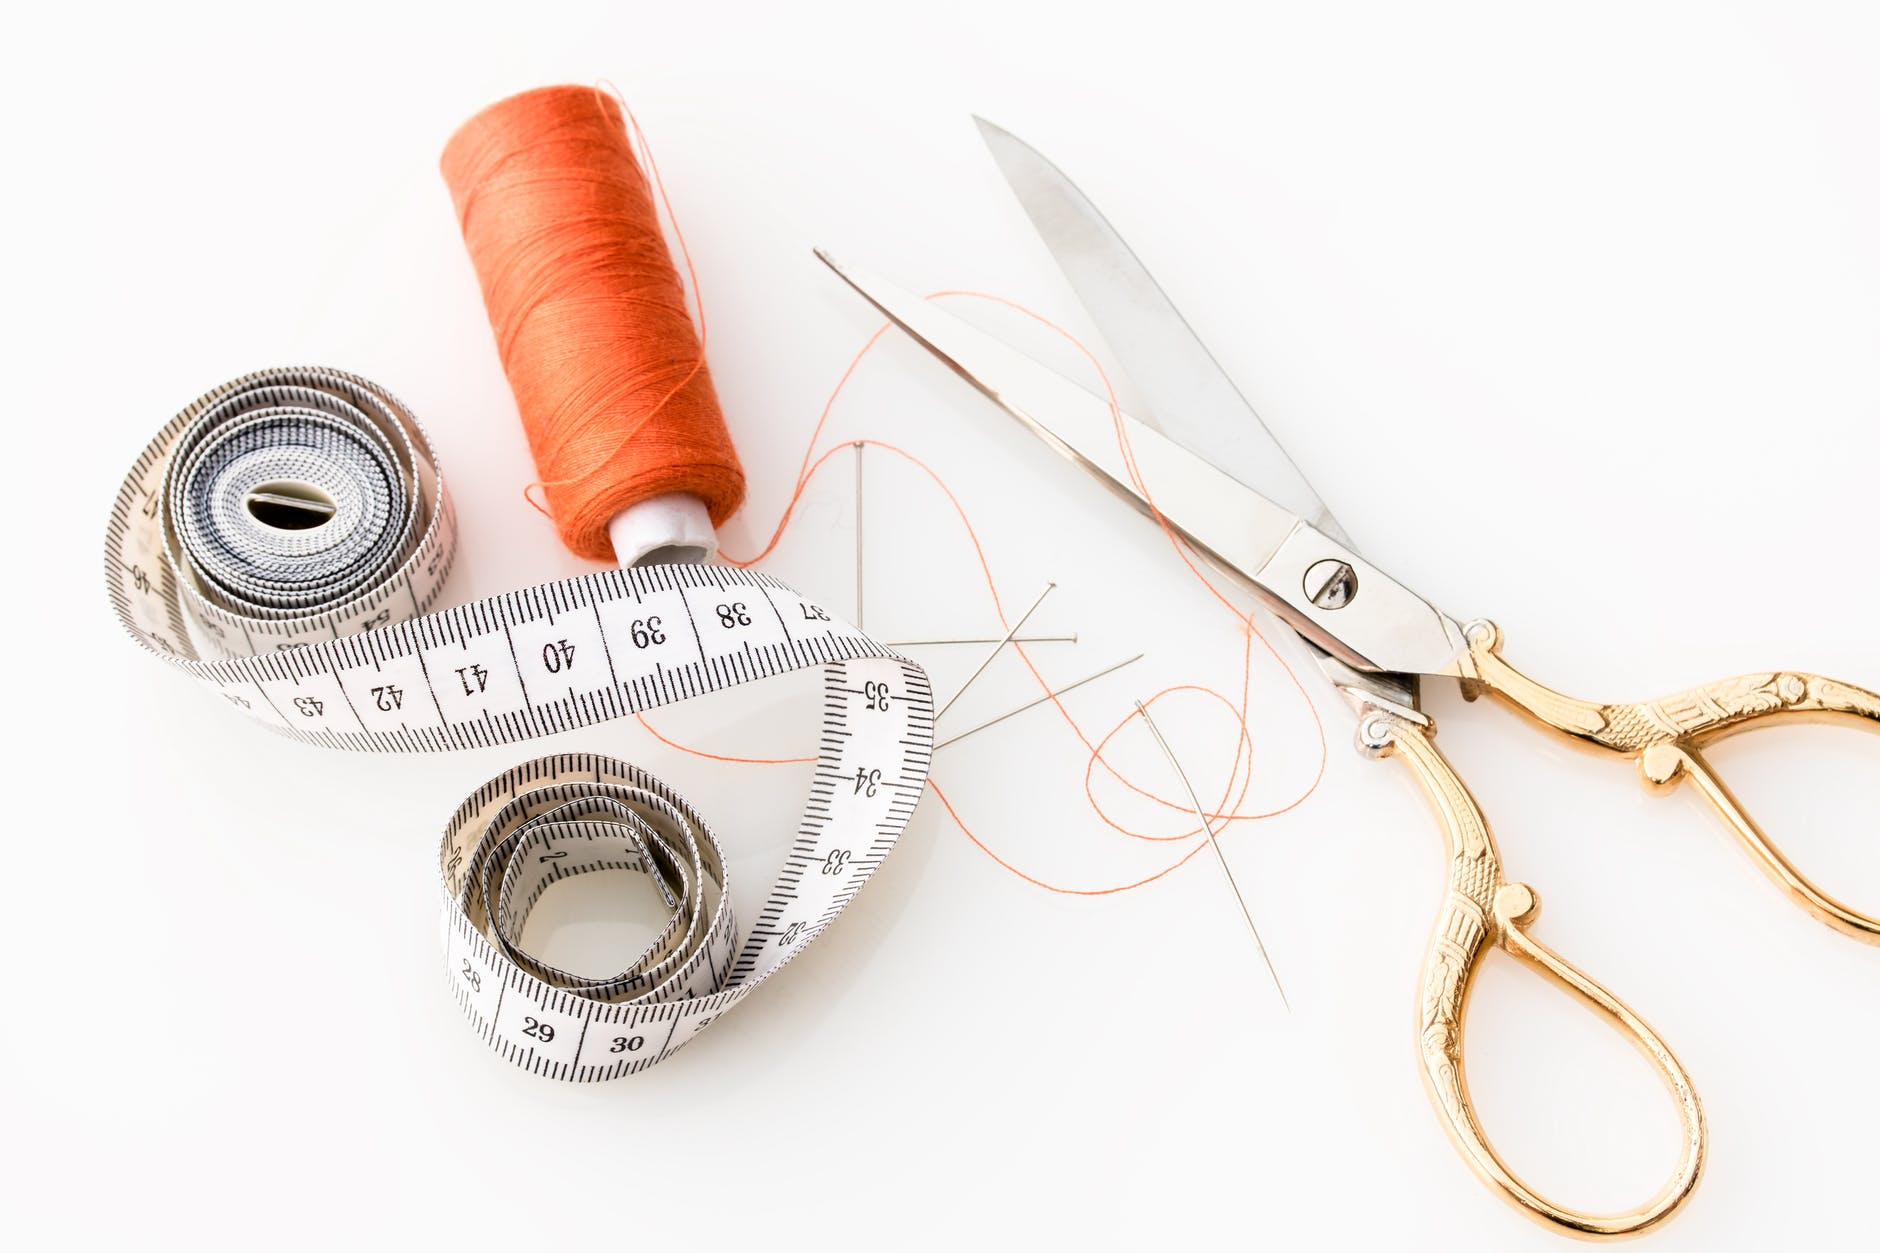 How To Start Tailoring Material Business And Sewing In Nigeria 2020